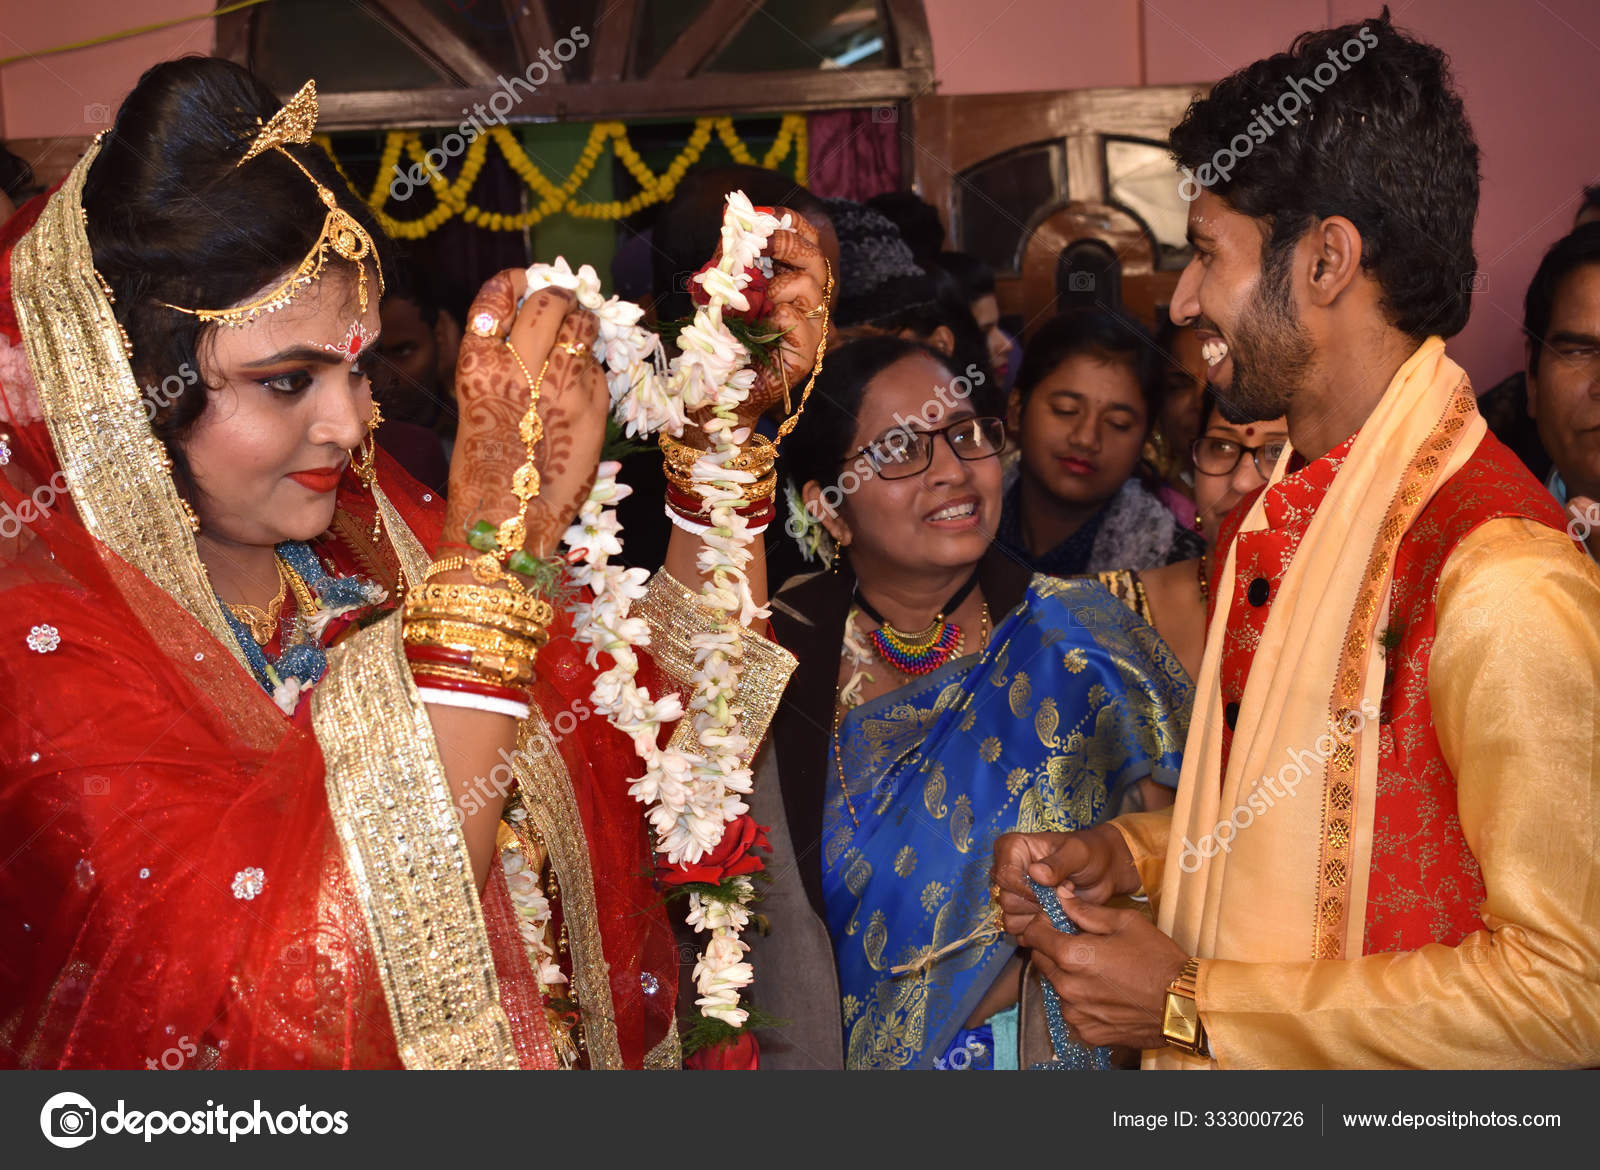 Indian Bengali Wedding Moment Bride And Groom Exchanging Garland To Each Other Stock Editorial Photo C Mahata Somnath Gmail Com 333000726